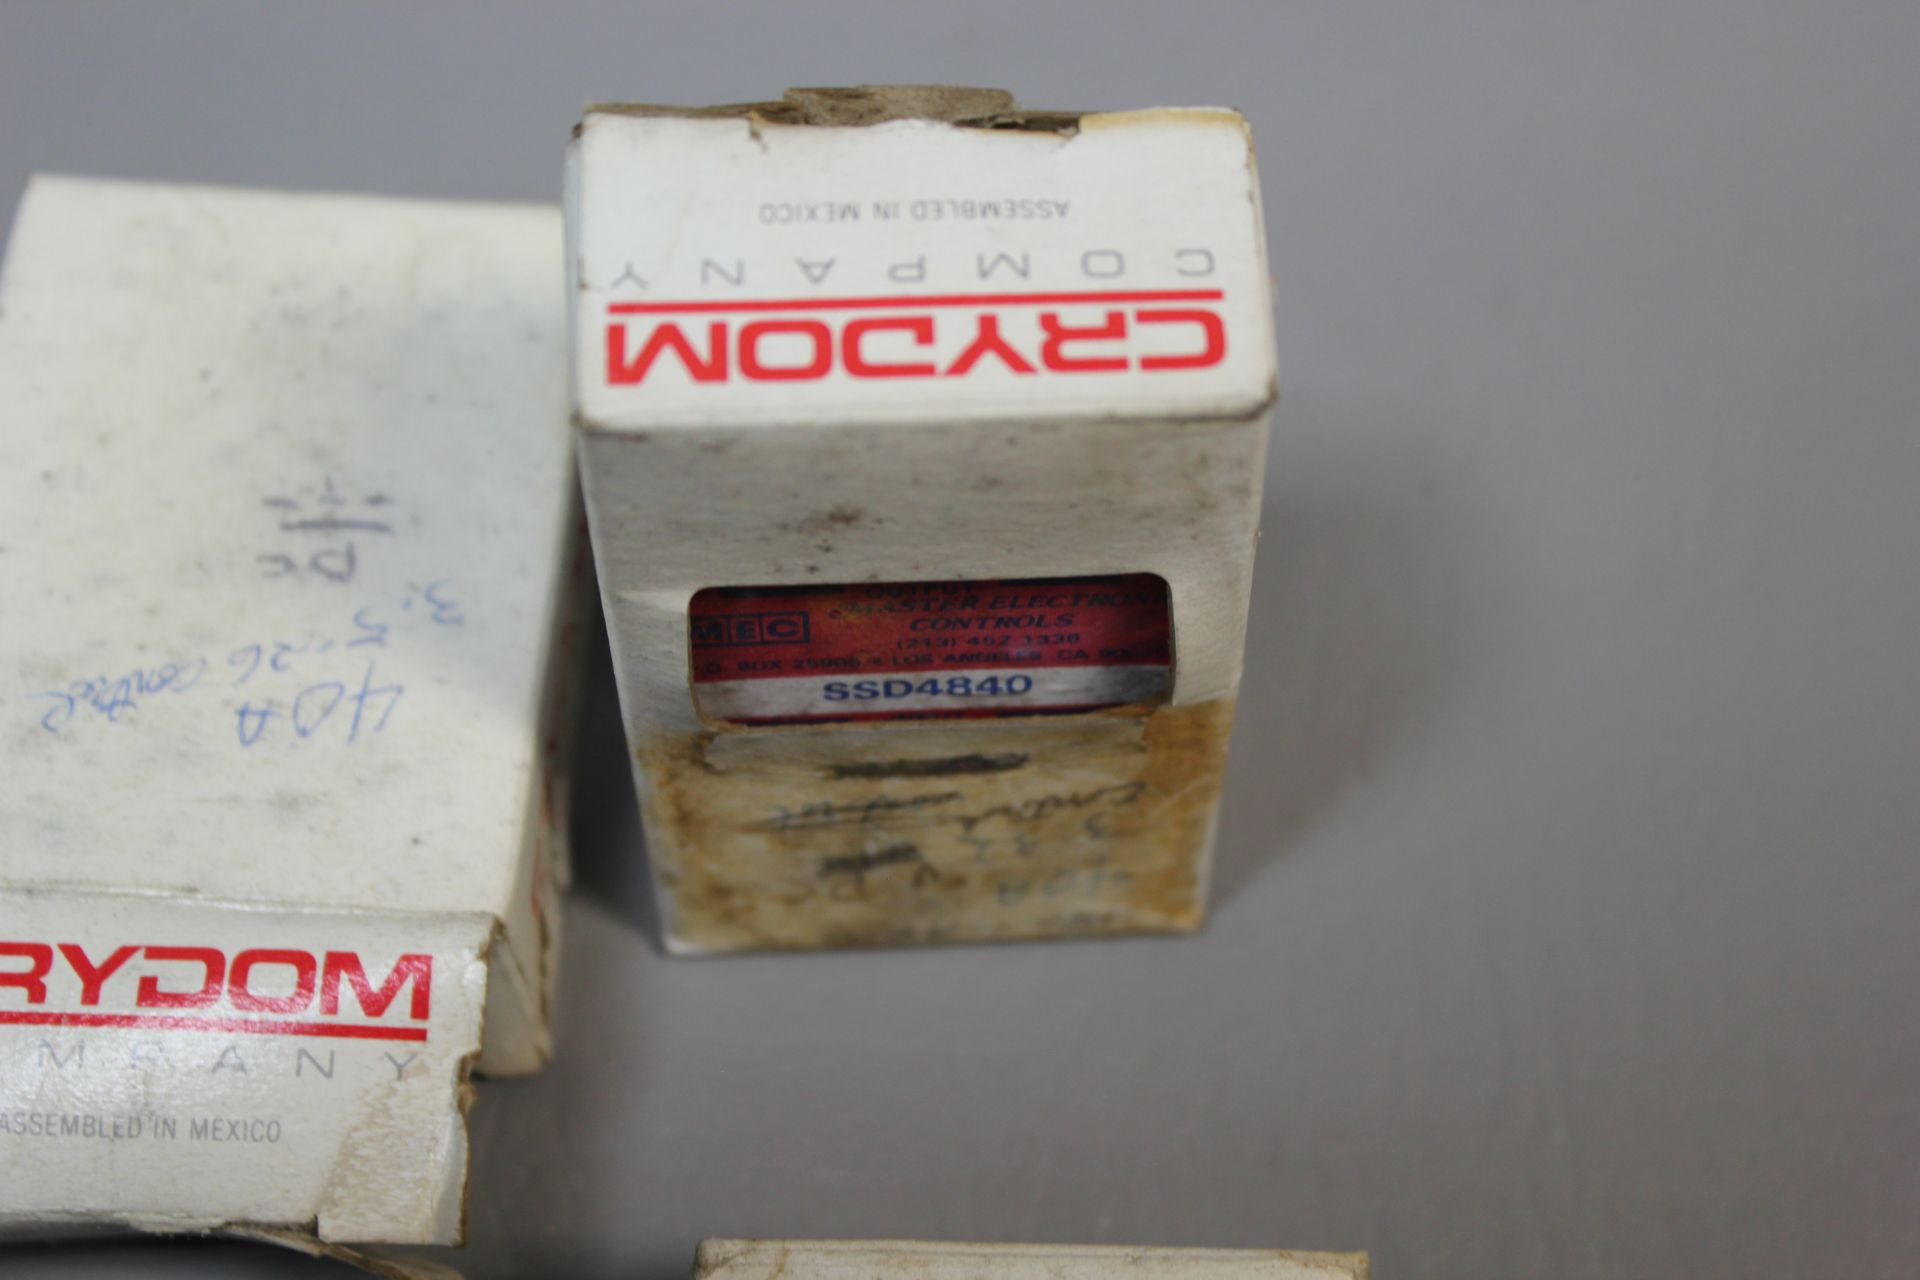 LOT OF NEW SOLID STATE RELAYS - Image 6 of 8